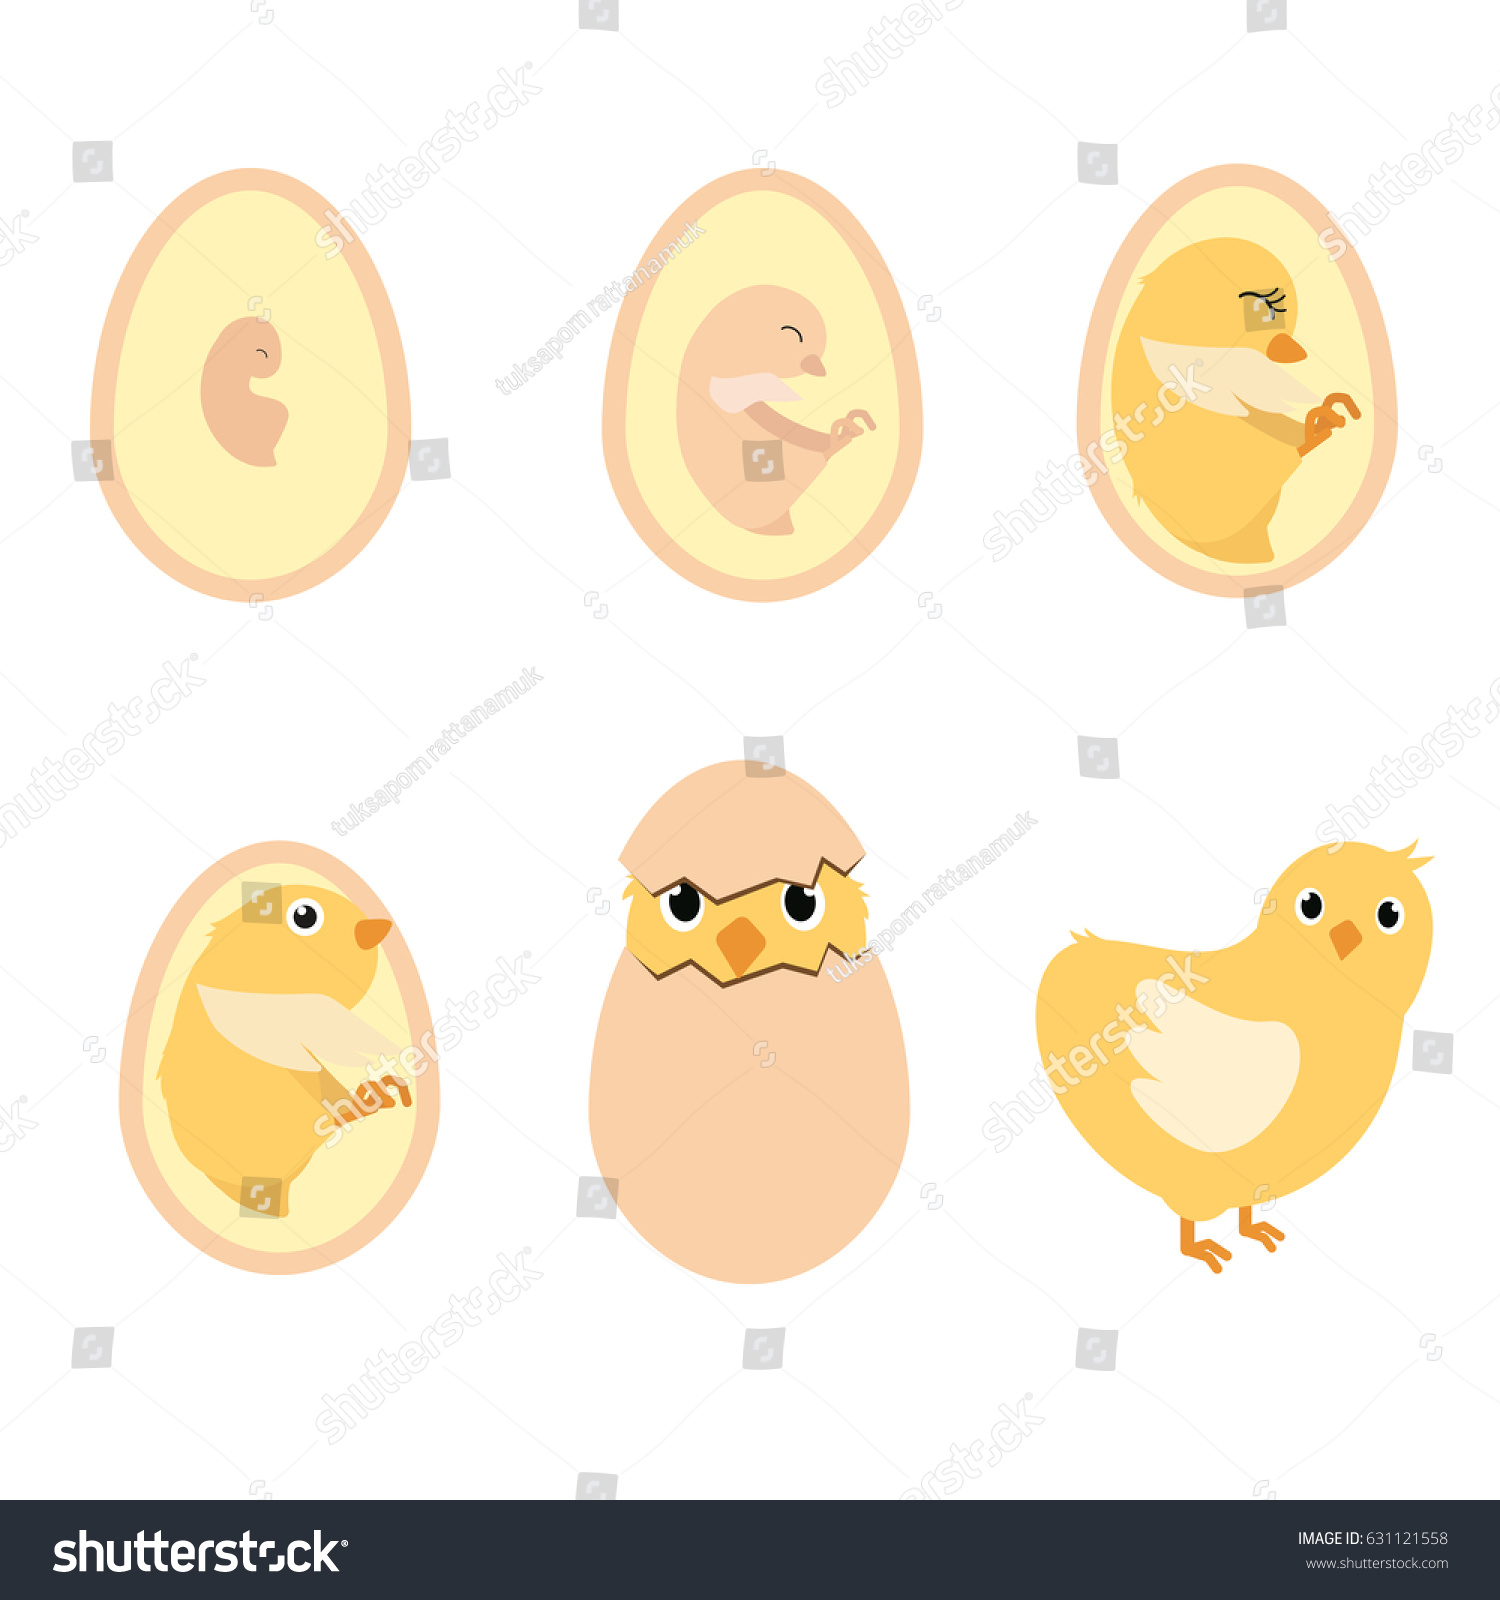 Chicken Egg Life Cycle Anatomy Illustration Stock Vector (Royalty ...